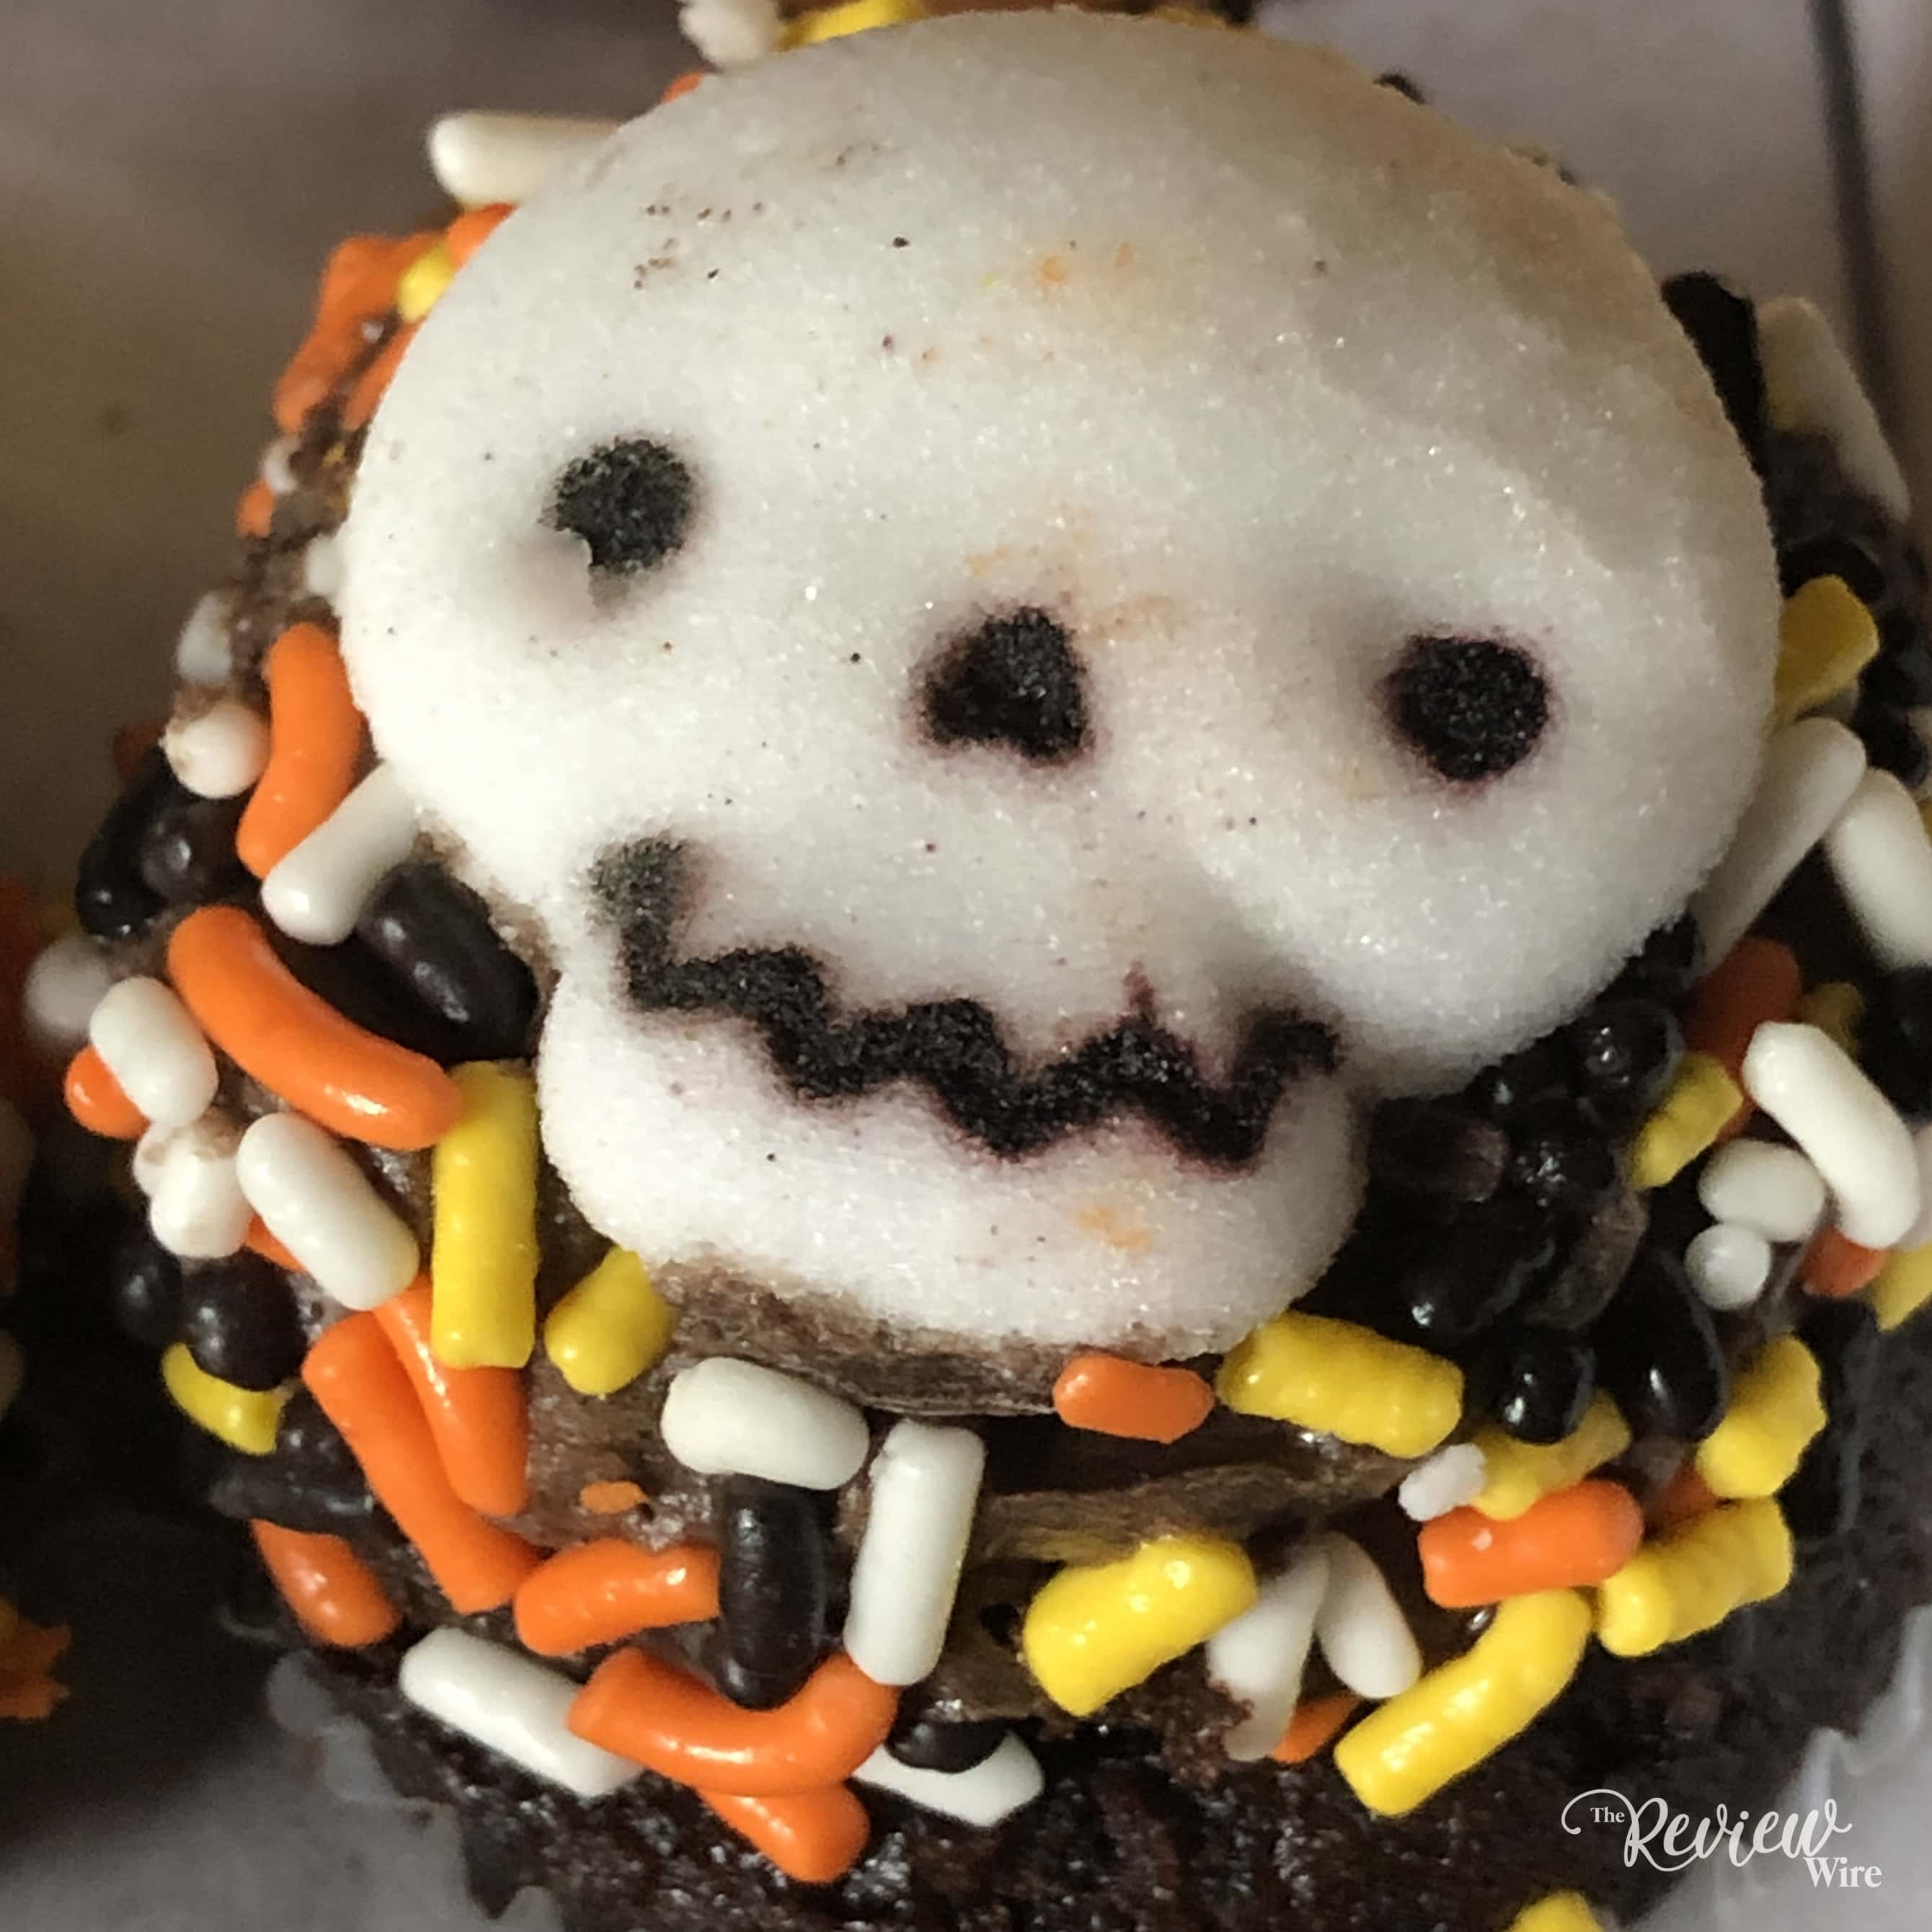 The Review Wire - Bake Me A Wish! Mini Halloween Cupcakes - Skeleton